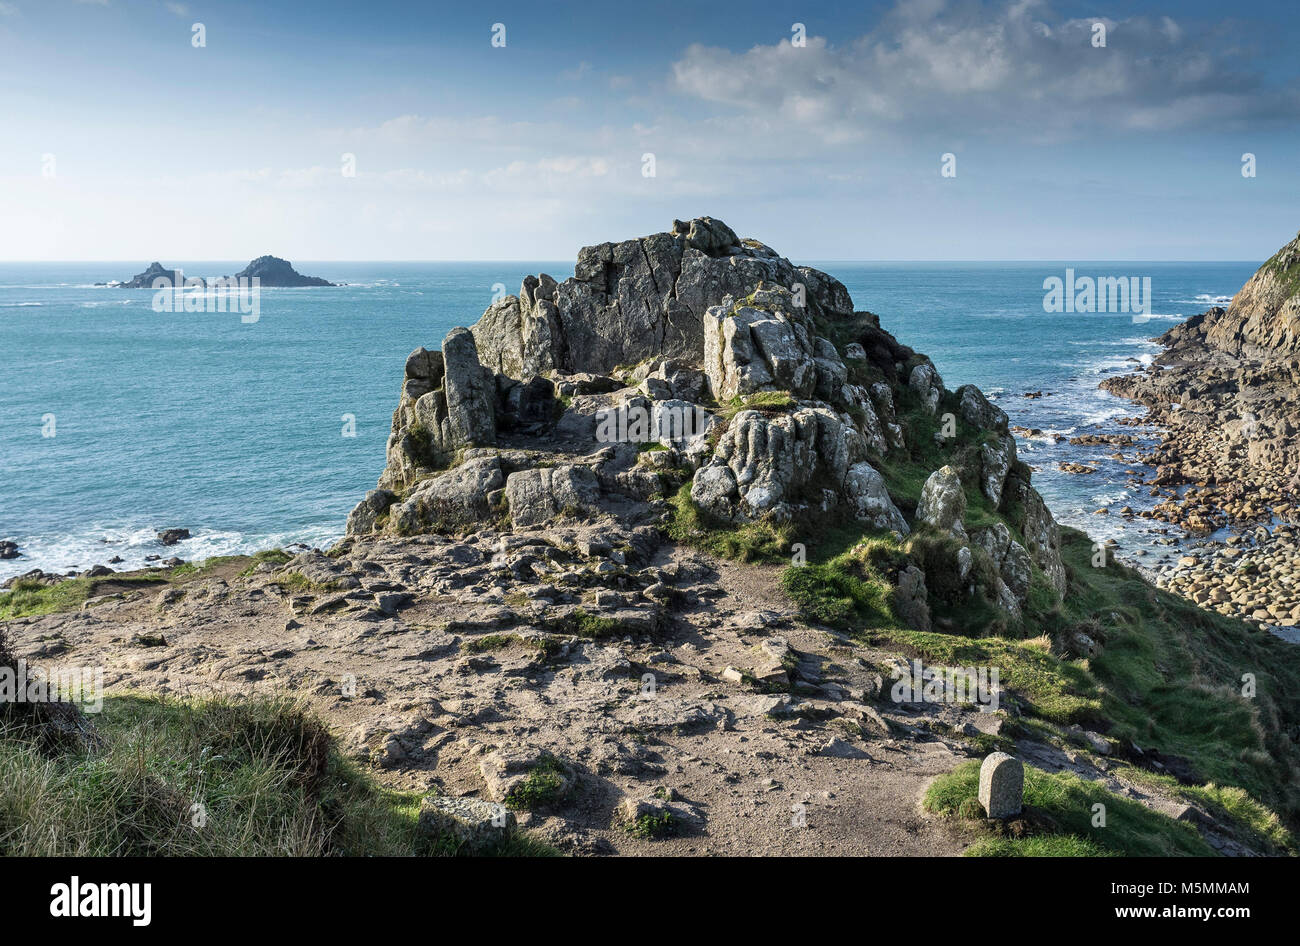 A granite outcrop on a headland overlooking Porth Nanven in Cornwall. - Stock Image